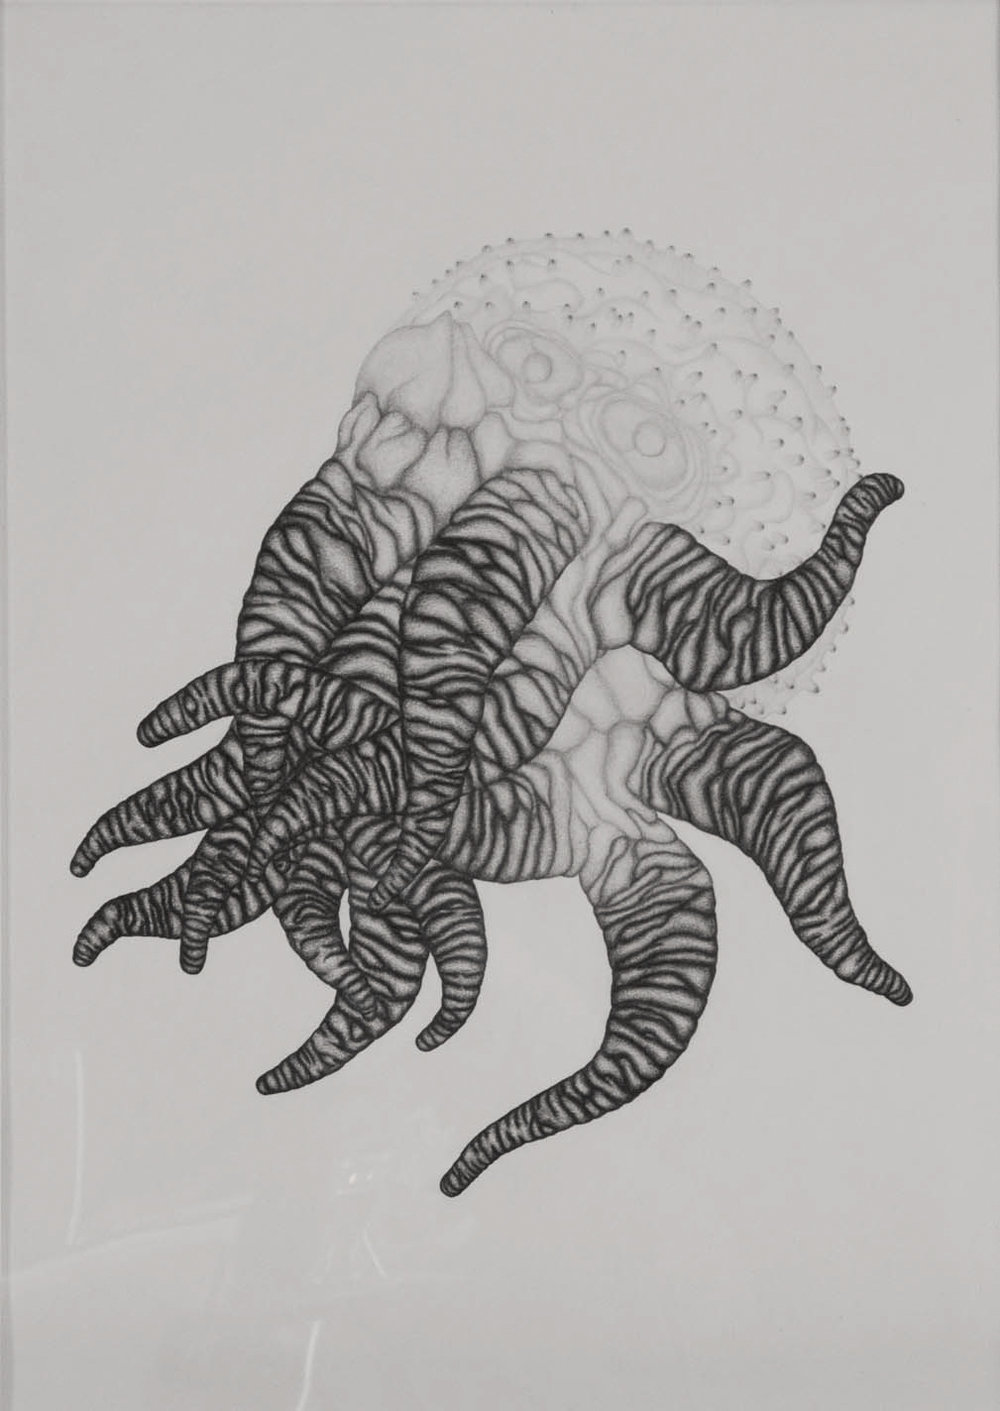 Monster,  2013. 70cmx50cm. Pencil on Fabriano paper.